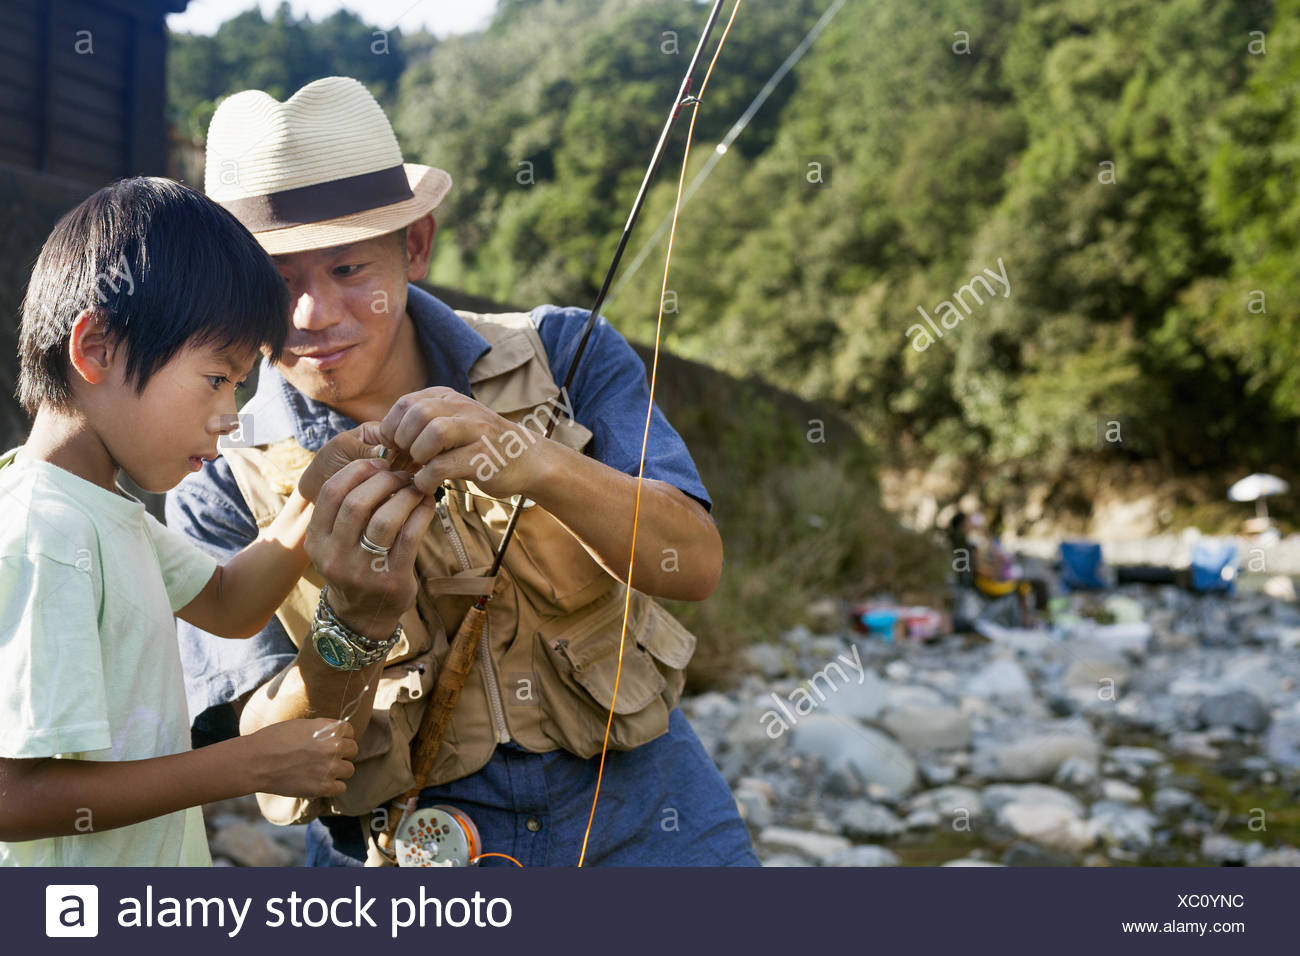 Father and son fishing by a stream. - Stock Image